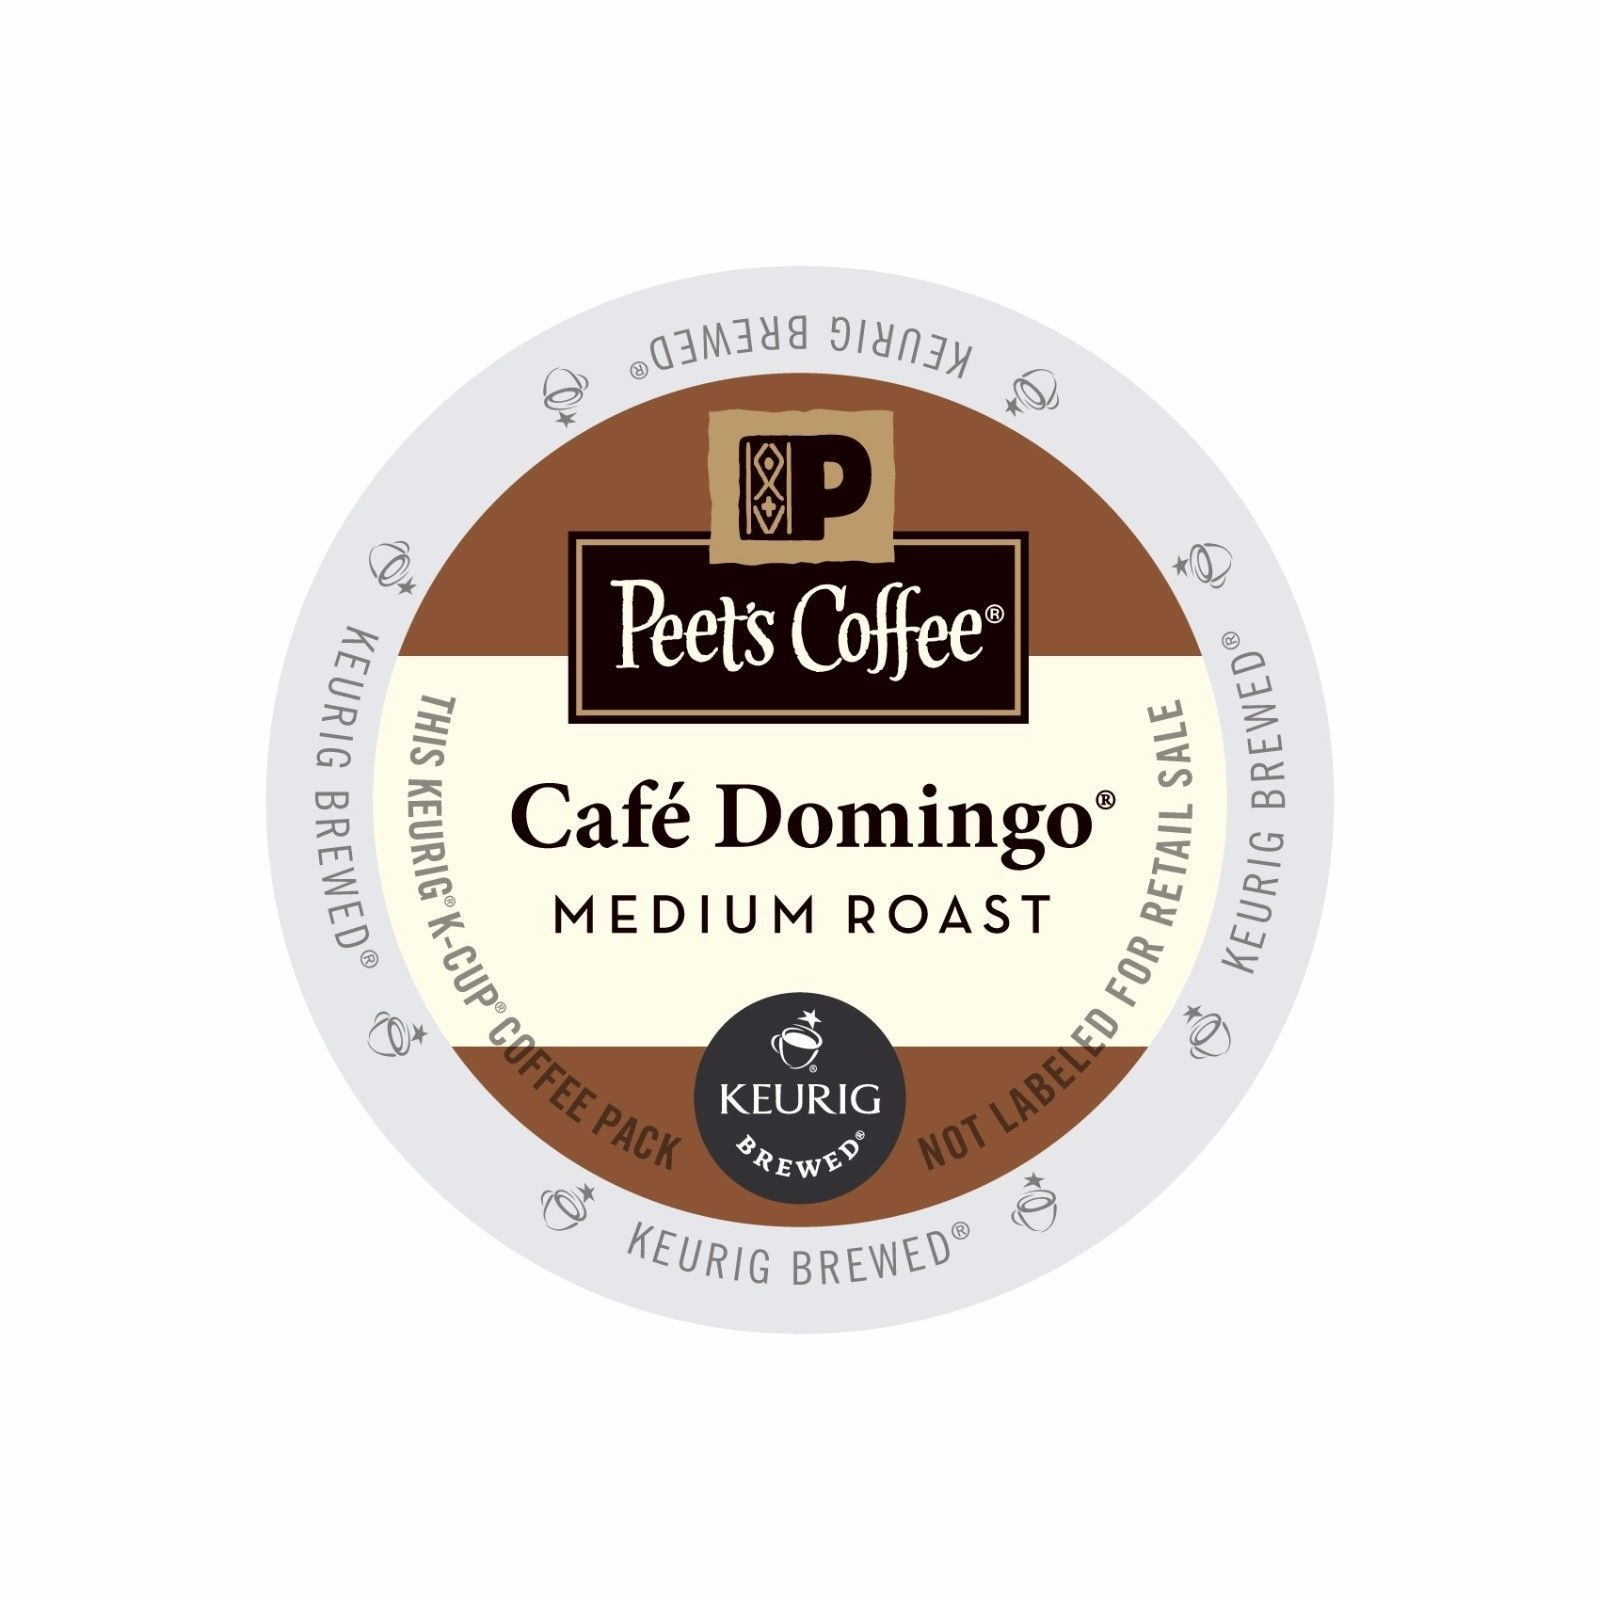 Peet's Coffee Cafe Domingo Coffee, 88 count K cups, FREE SHIPPING !